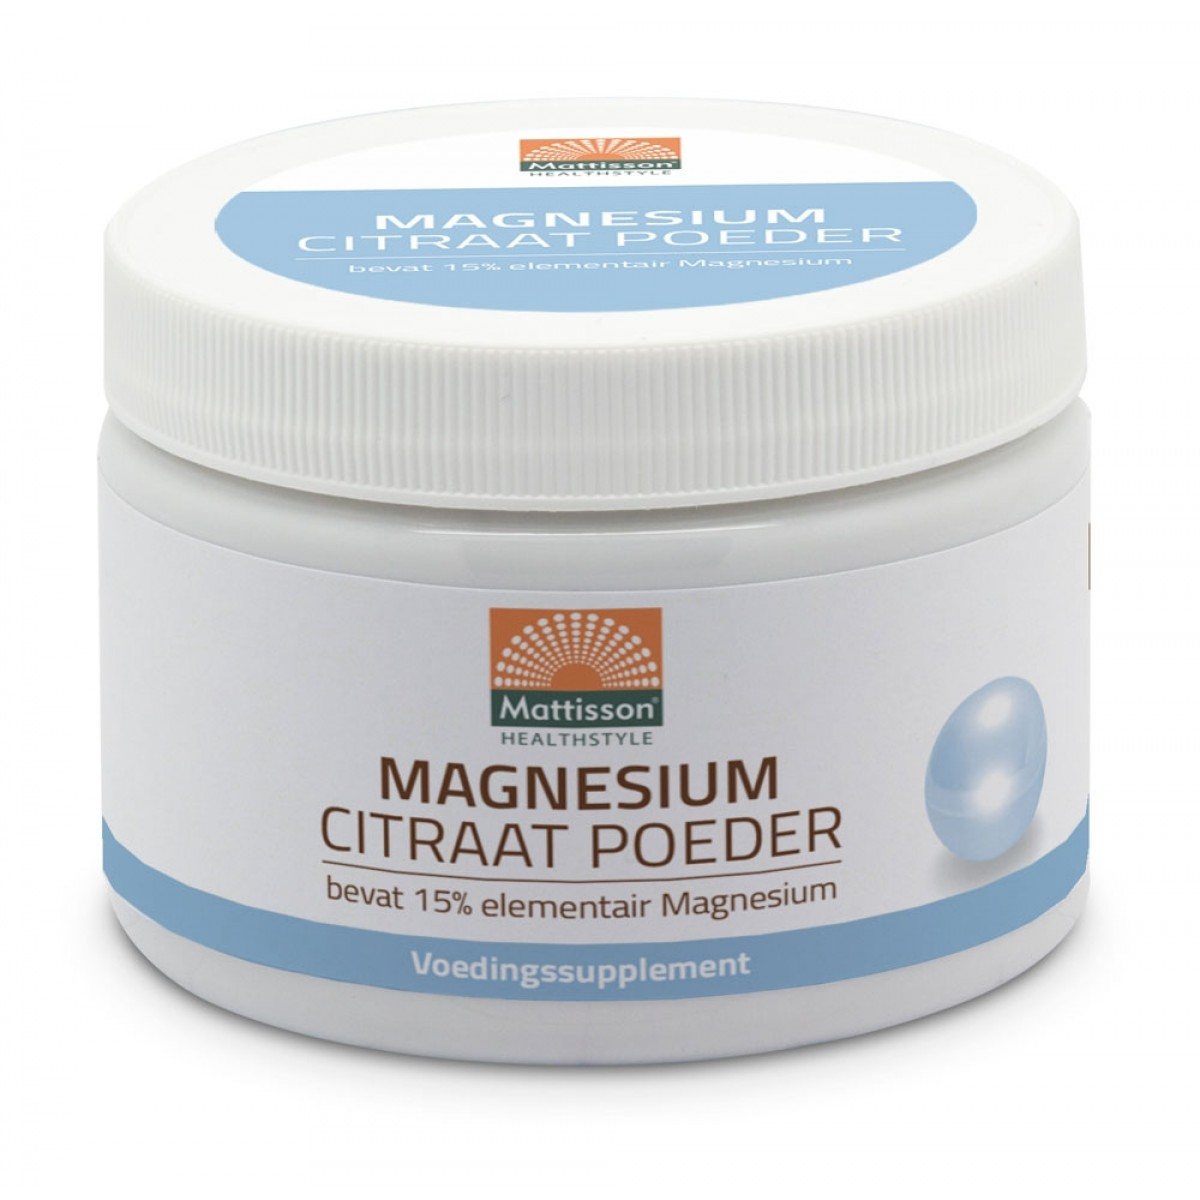 Magnesium Citraat Poeder 16% Elementair